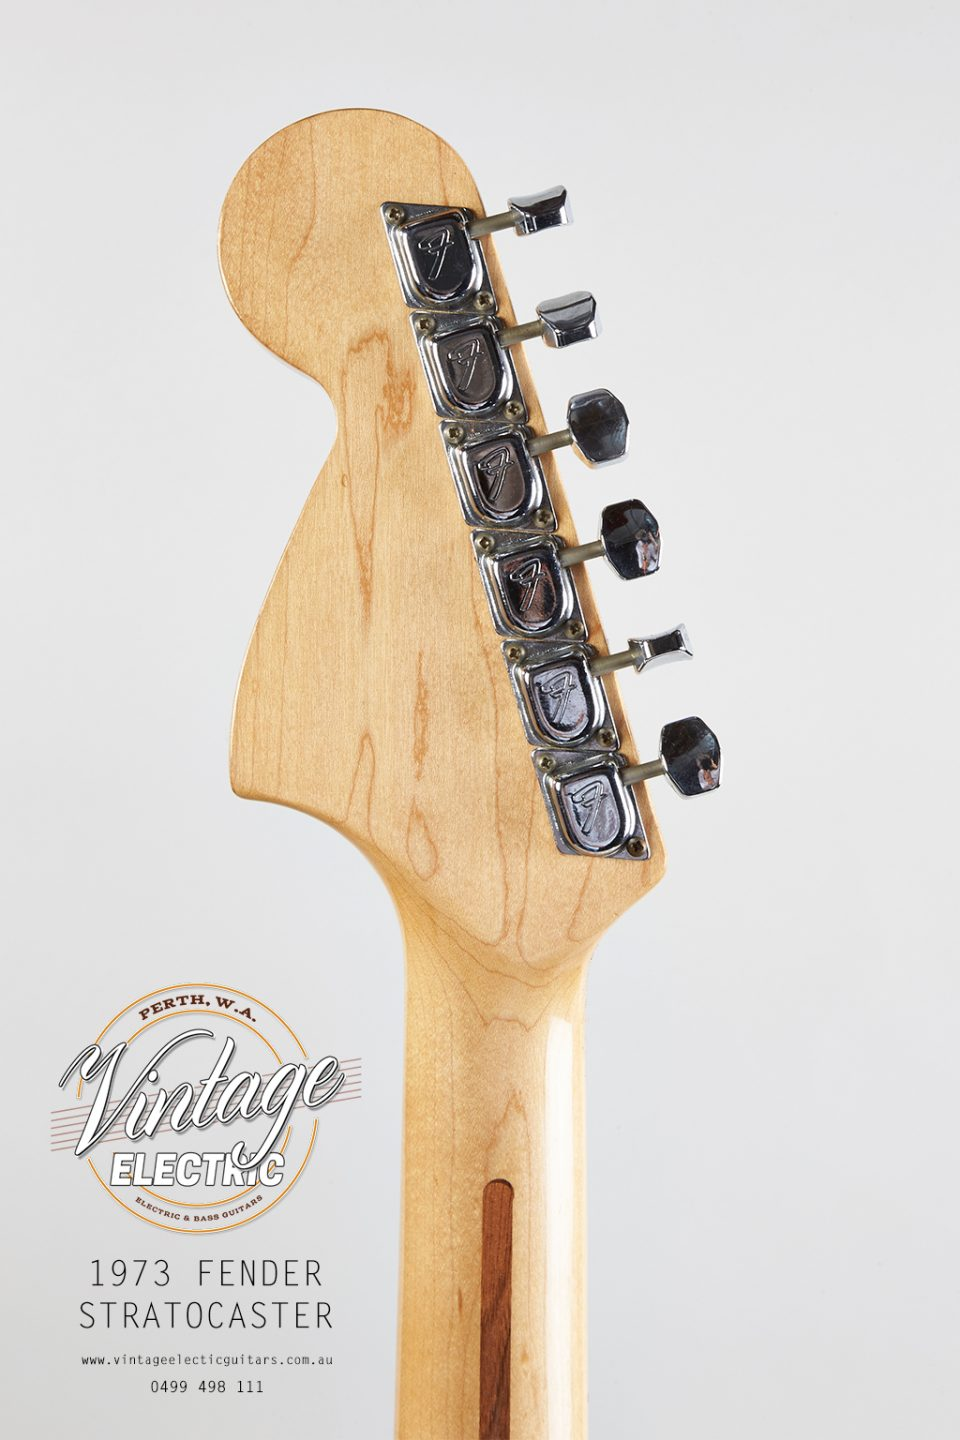 1973 Fender Stratocaster Back of Headstock